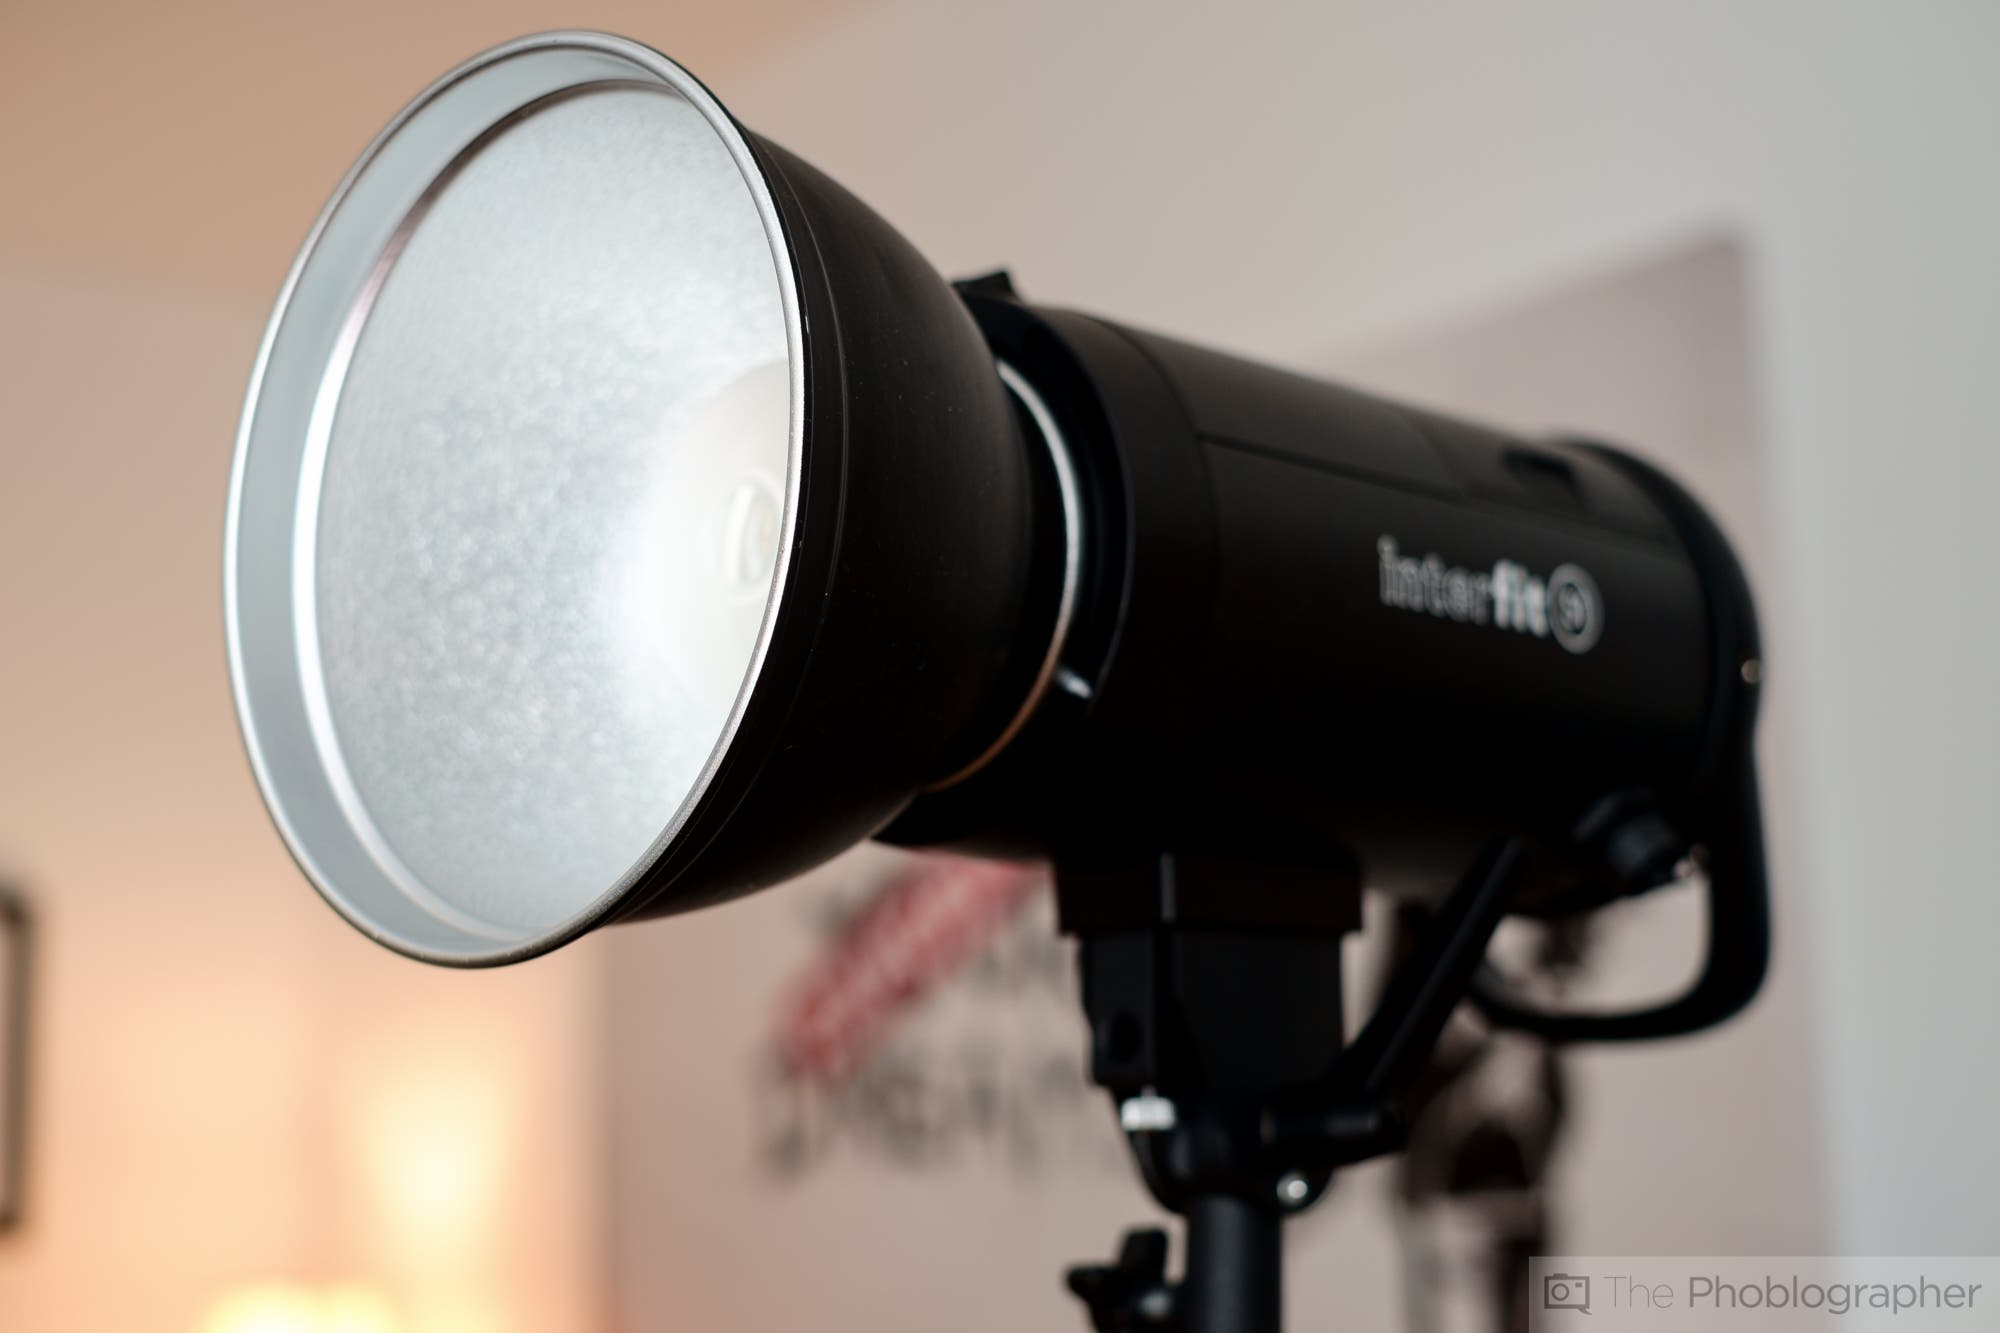 The Interfit S1 Monolight is Now Compatible with Sony Cameras